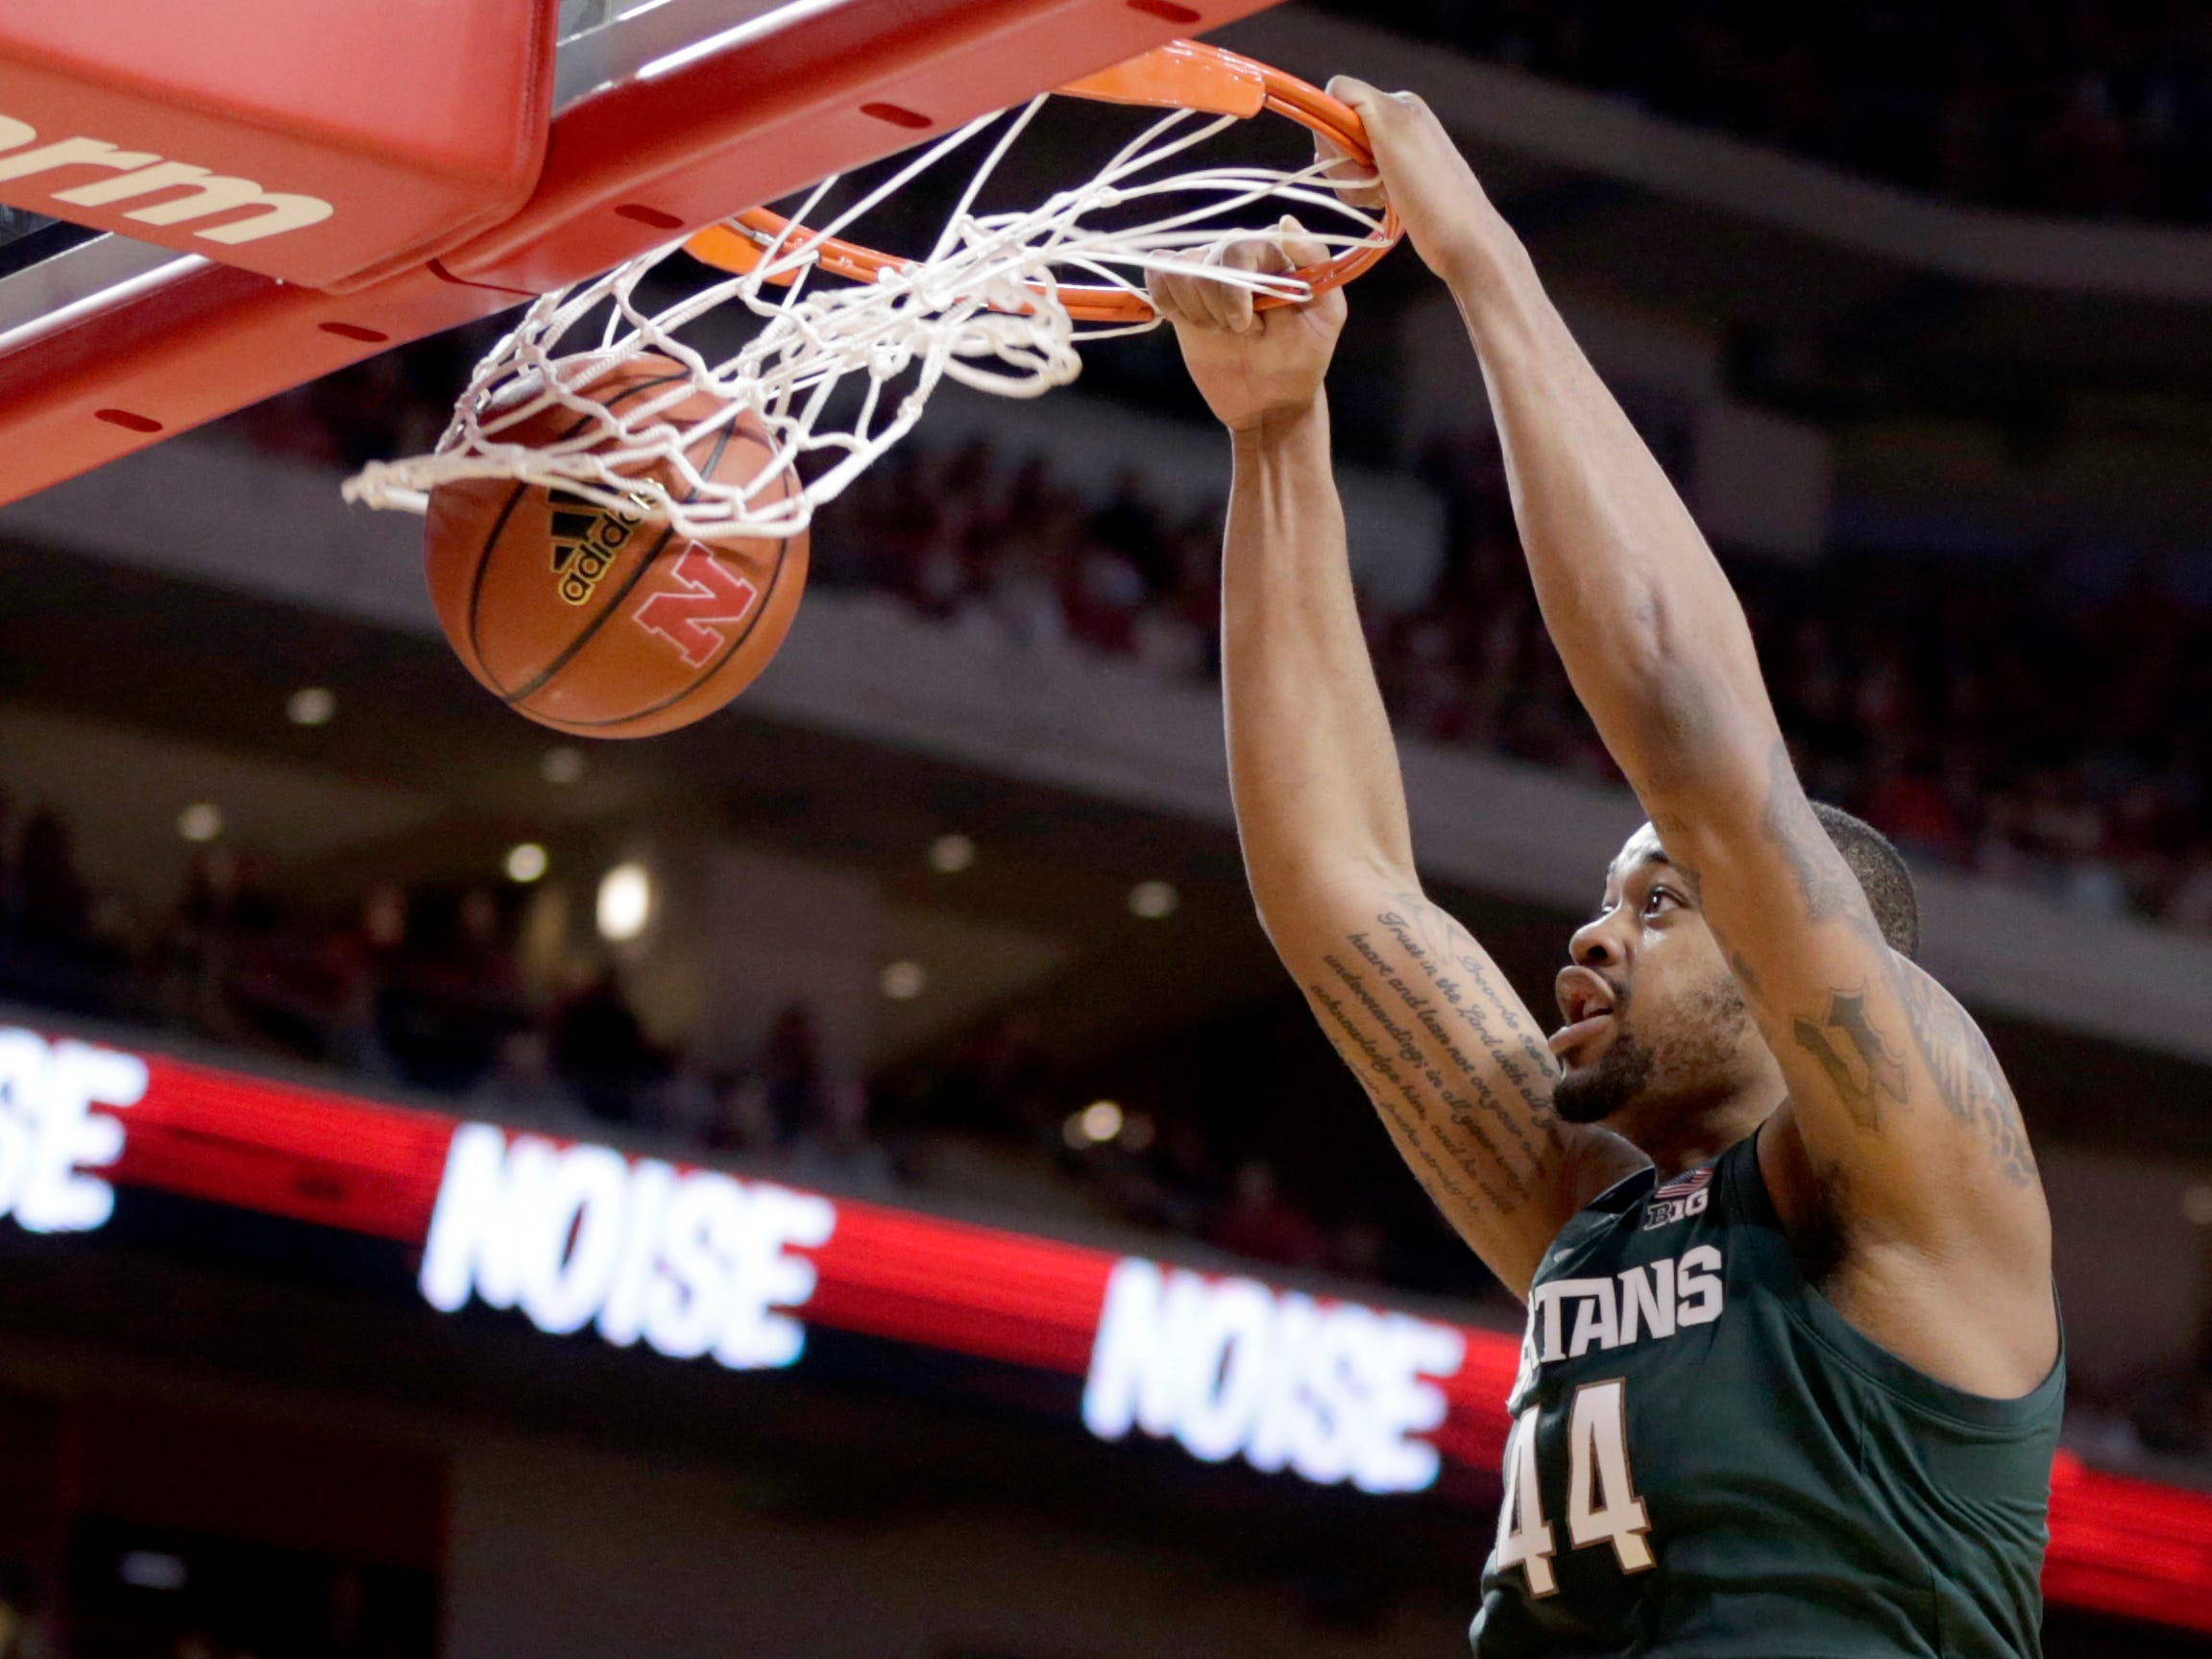 Michigan State's Nick Ward (44) dunks as Nebraska's Isaiah Roby (15) watches during the second half of an NCAA college basketball game in Lincoln, Neb., Thursday, Jan. 17, 2019. Michigan State won 70-64.